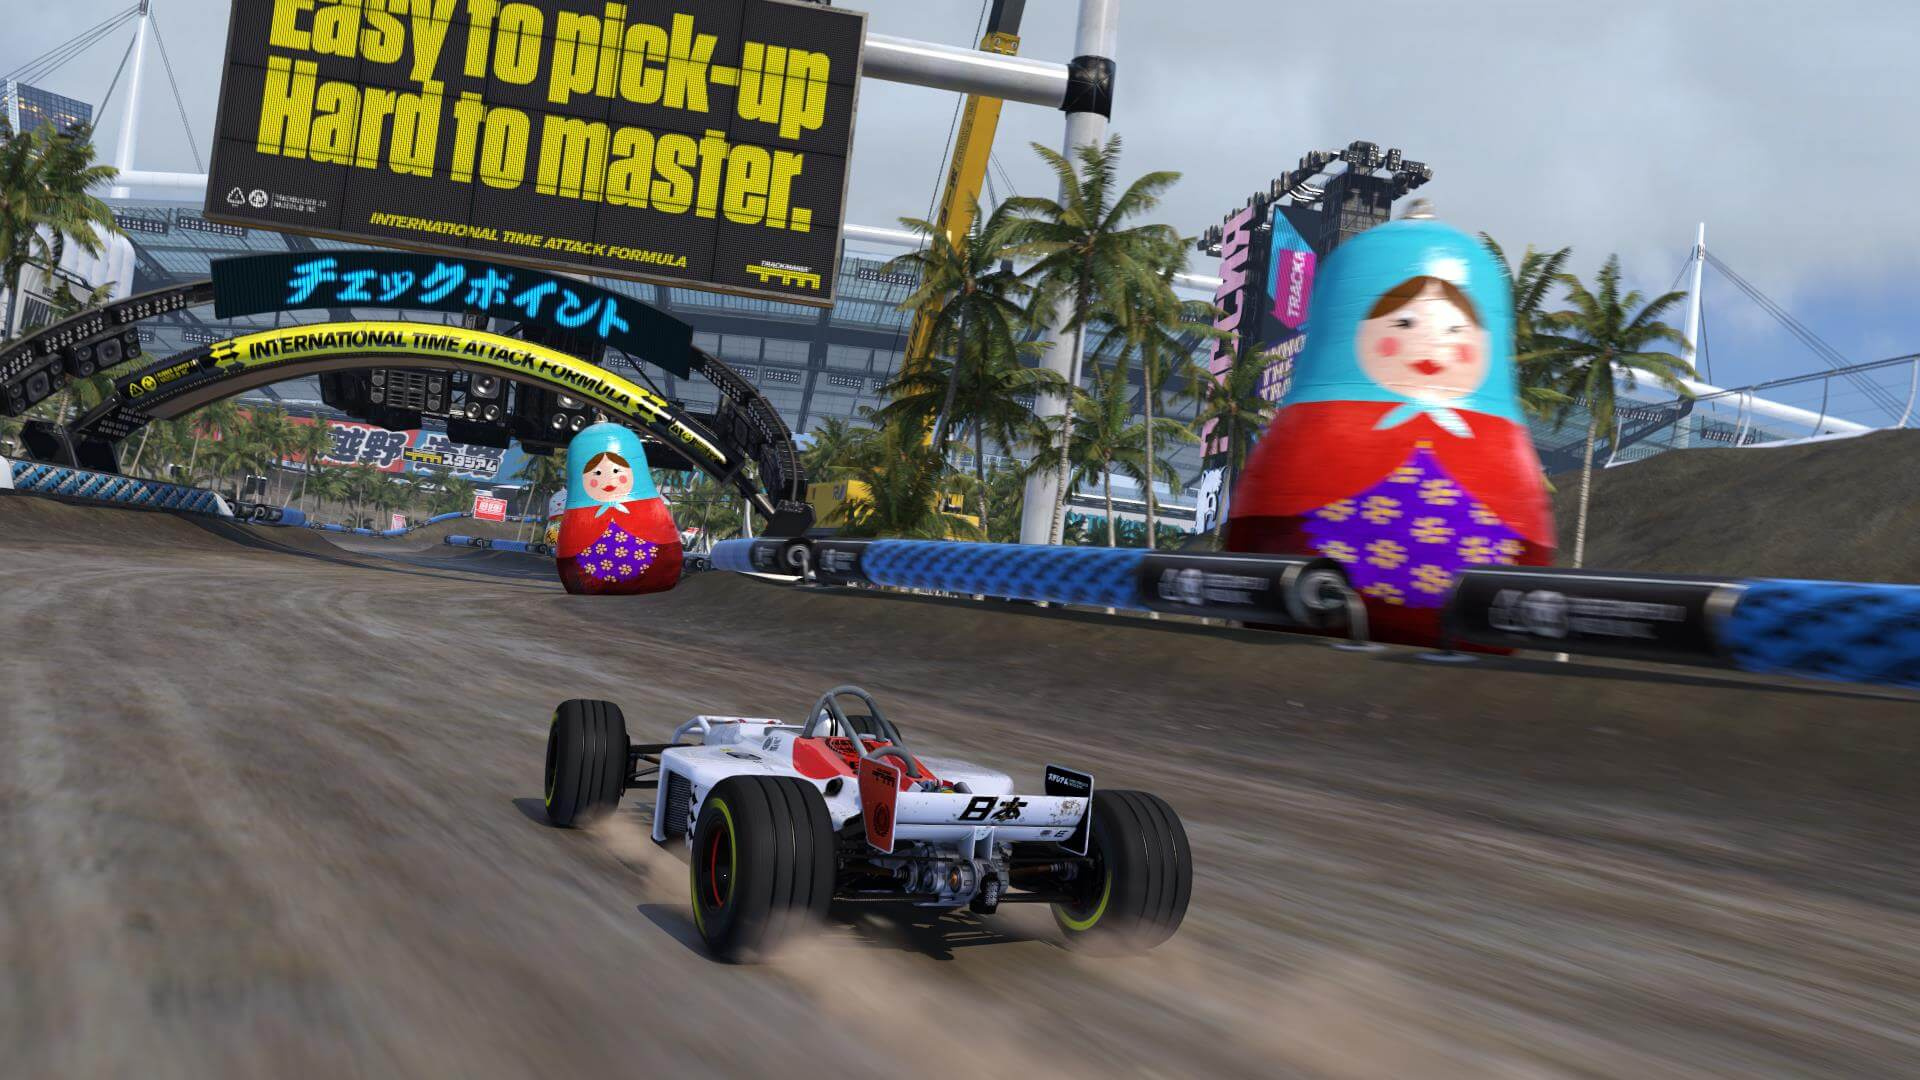 Trackmania Turbo open beta launches on PS4 & Xbox One this Friday